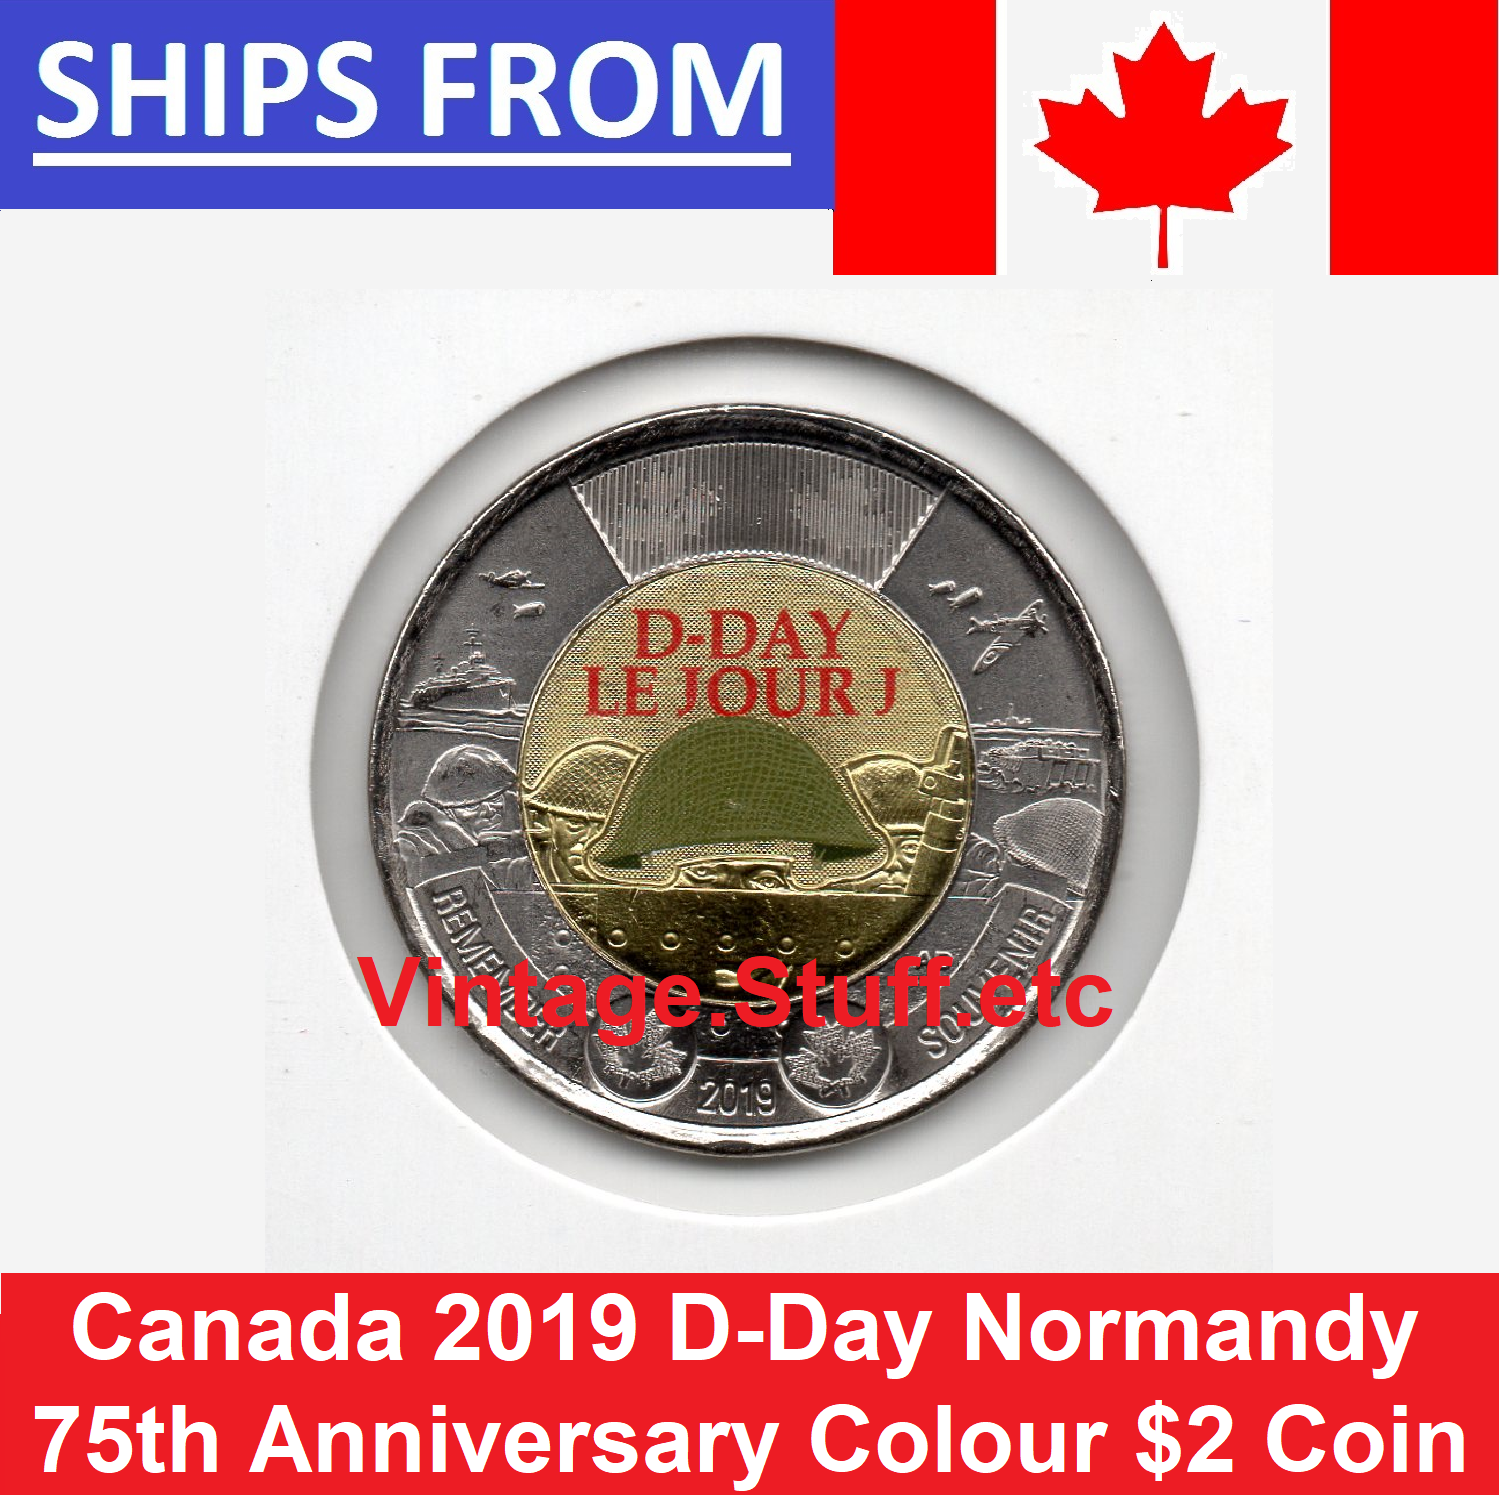 Details about 2019 Canada 75th Anniversary D-Day DDAY $2 Coloured Toonie  WW2 WWII UNC Color